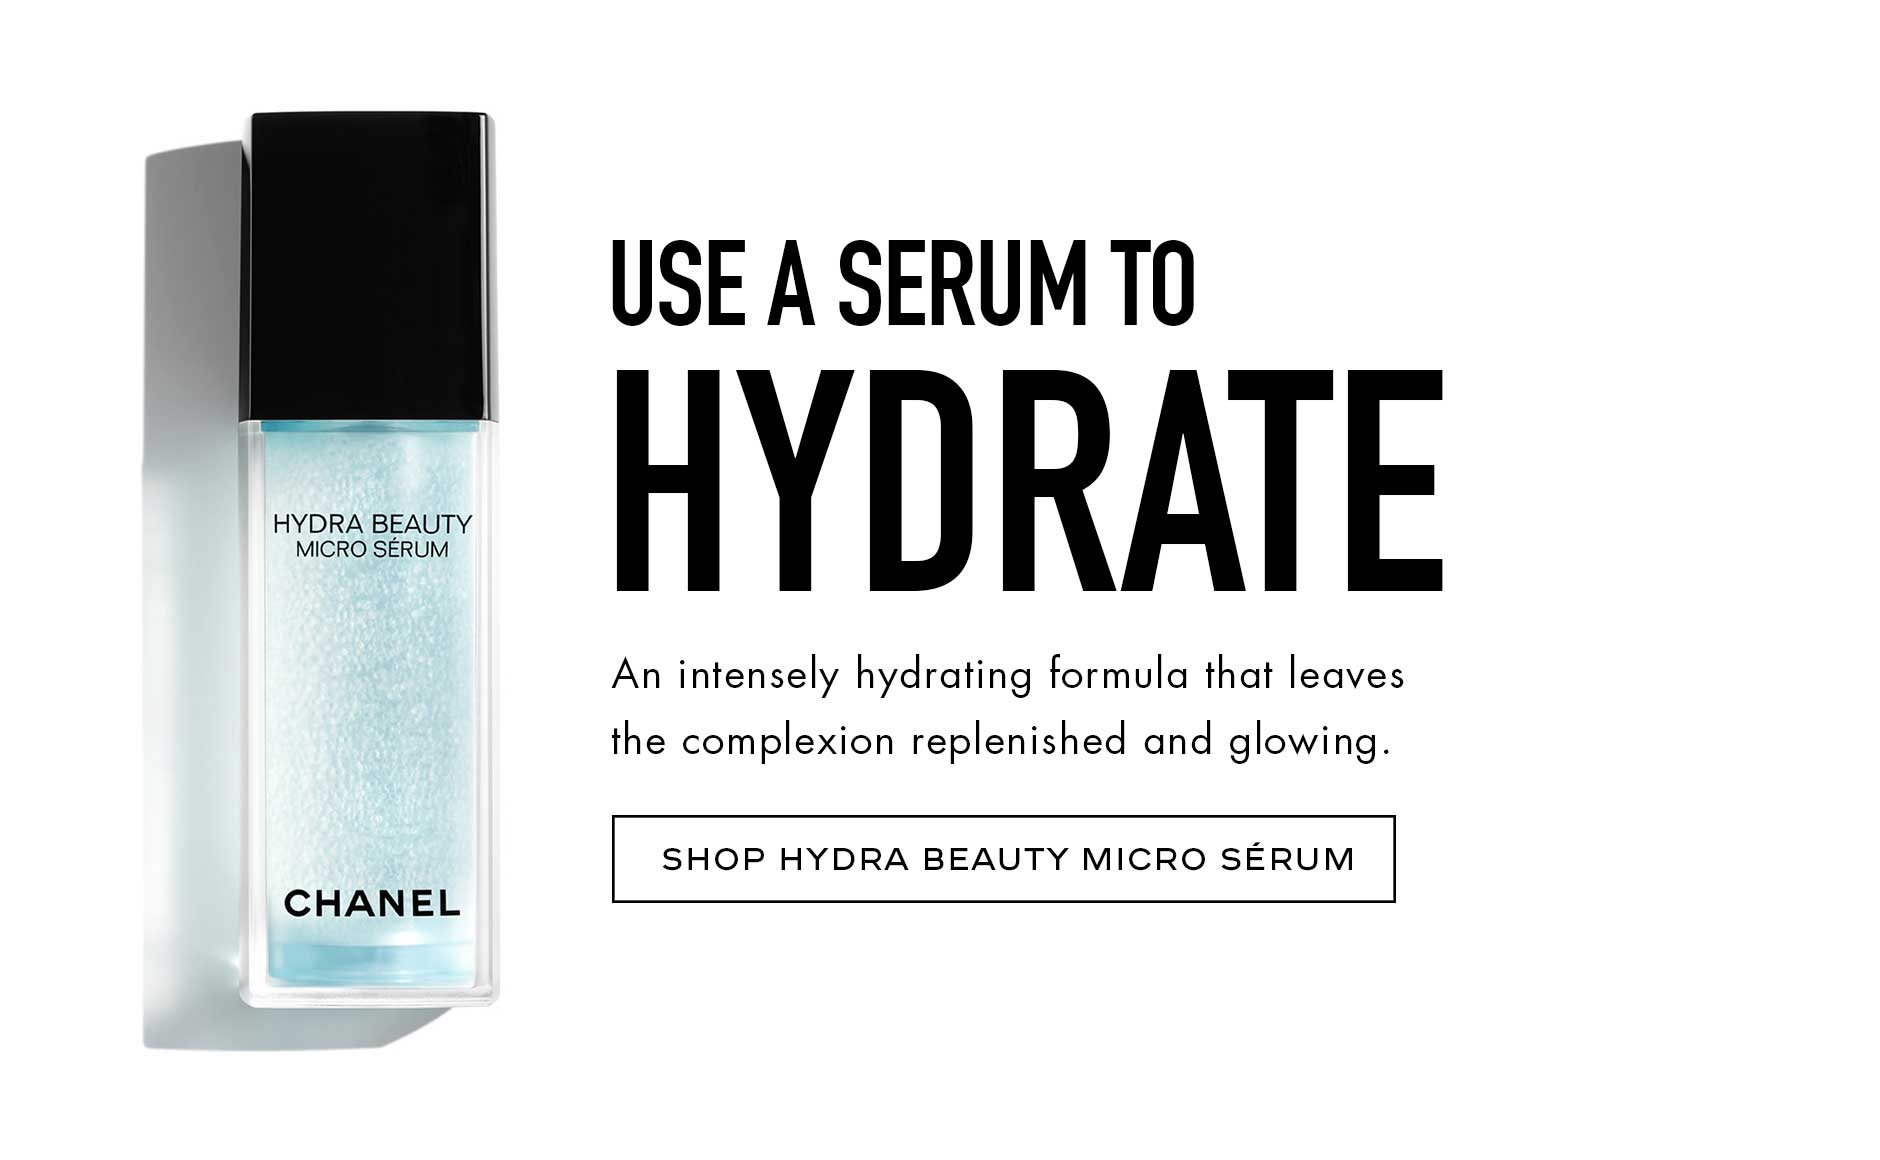 Use a serum to hydrate - An intensively hydrating formula that leaves the complexion replenished and glowing.